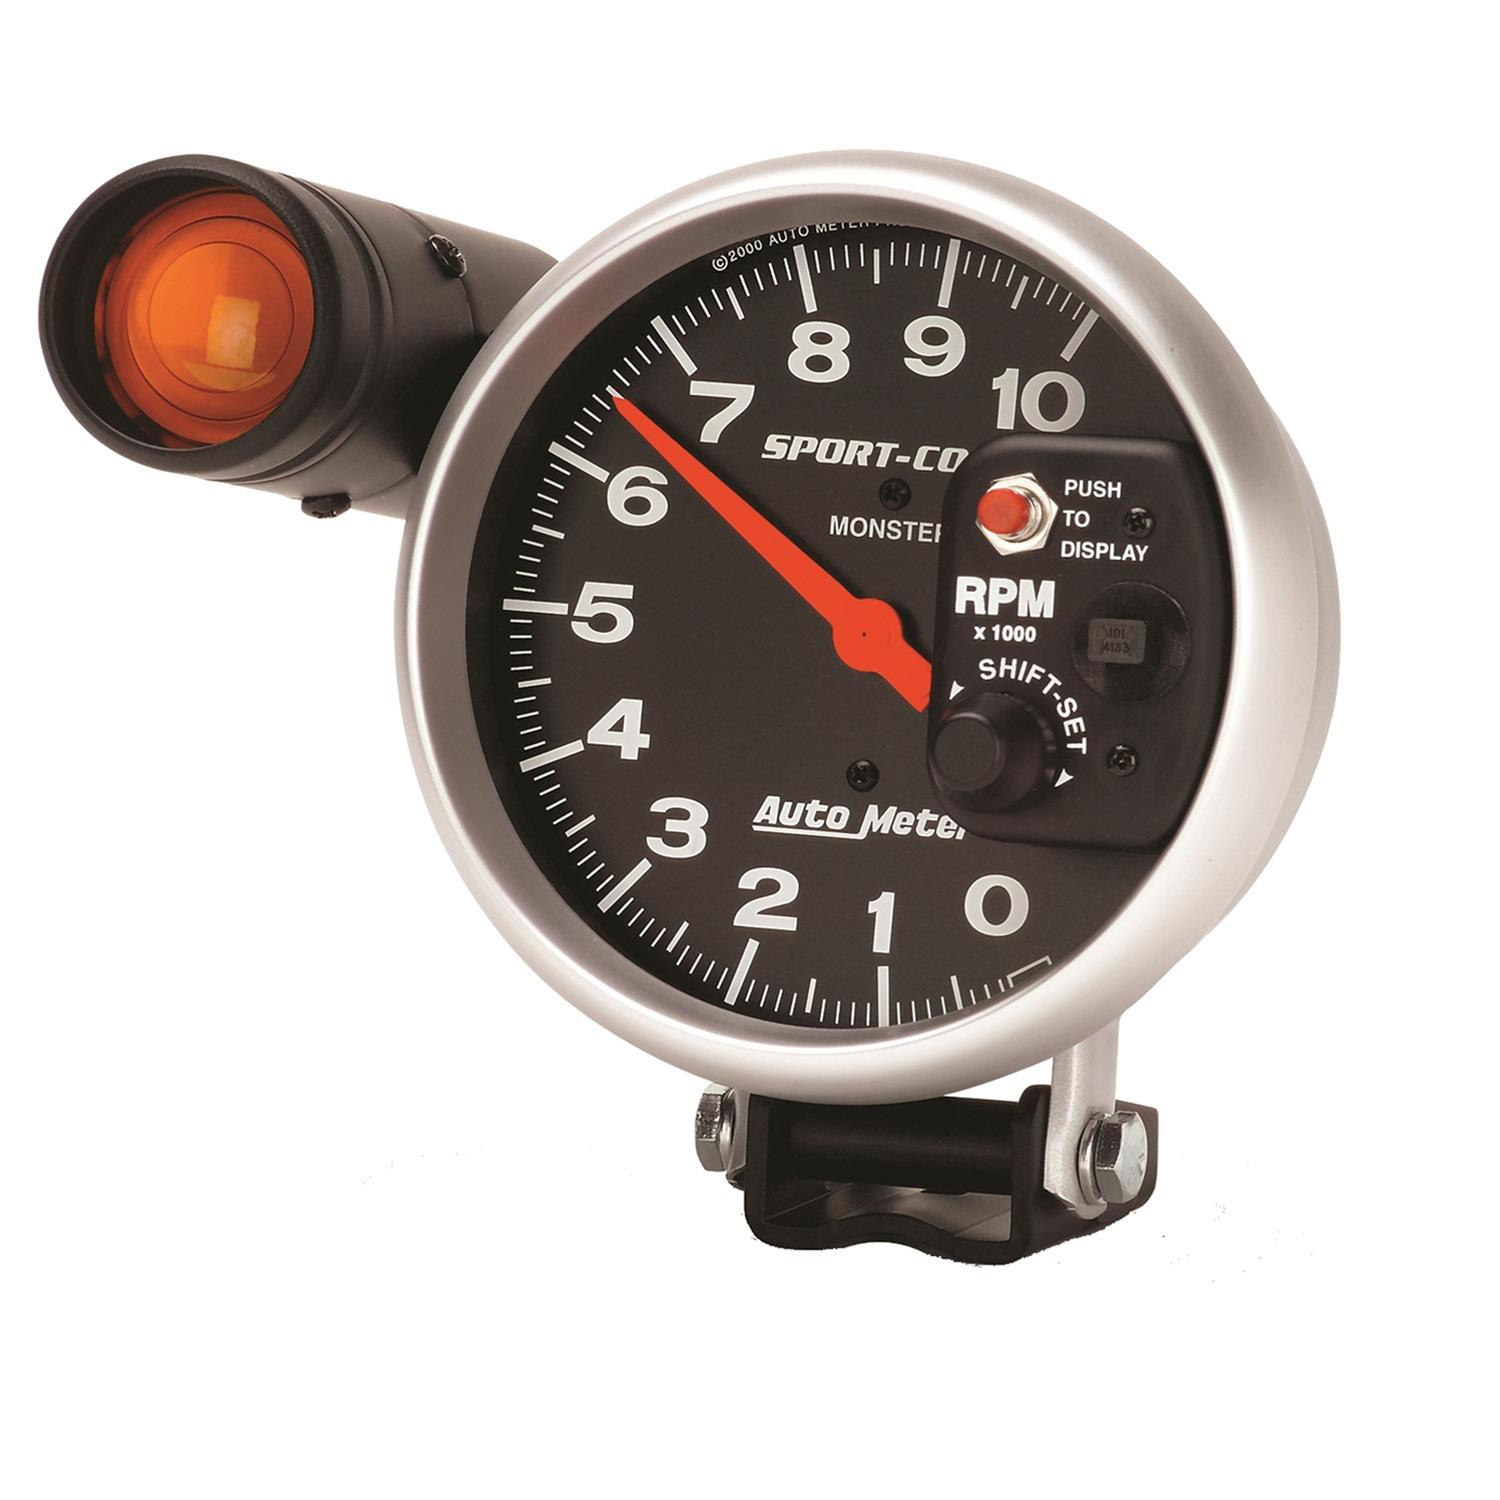 AutoMeter Sport-Comp Monster Shift-Lite Tachometers 3904 - Free Shipping on  Orders Over $49 at Summit Racing